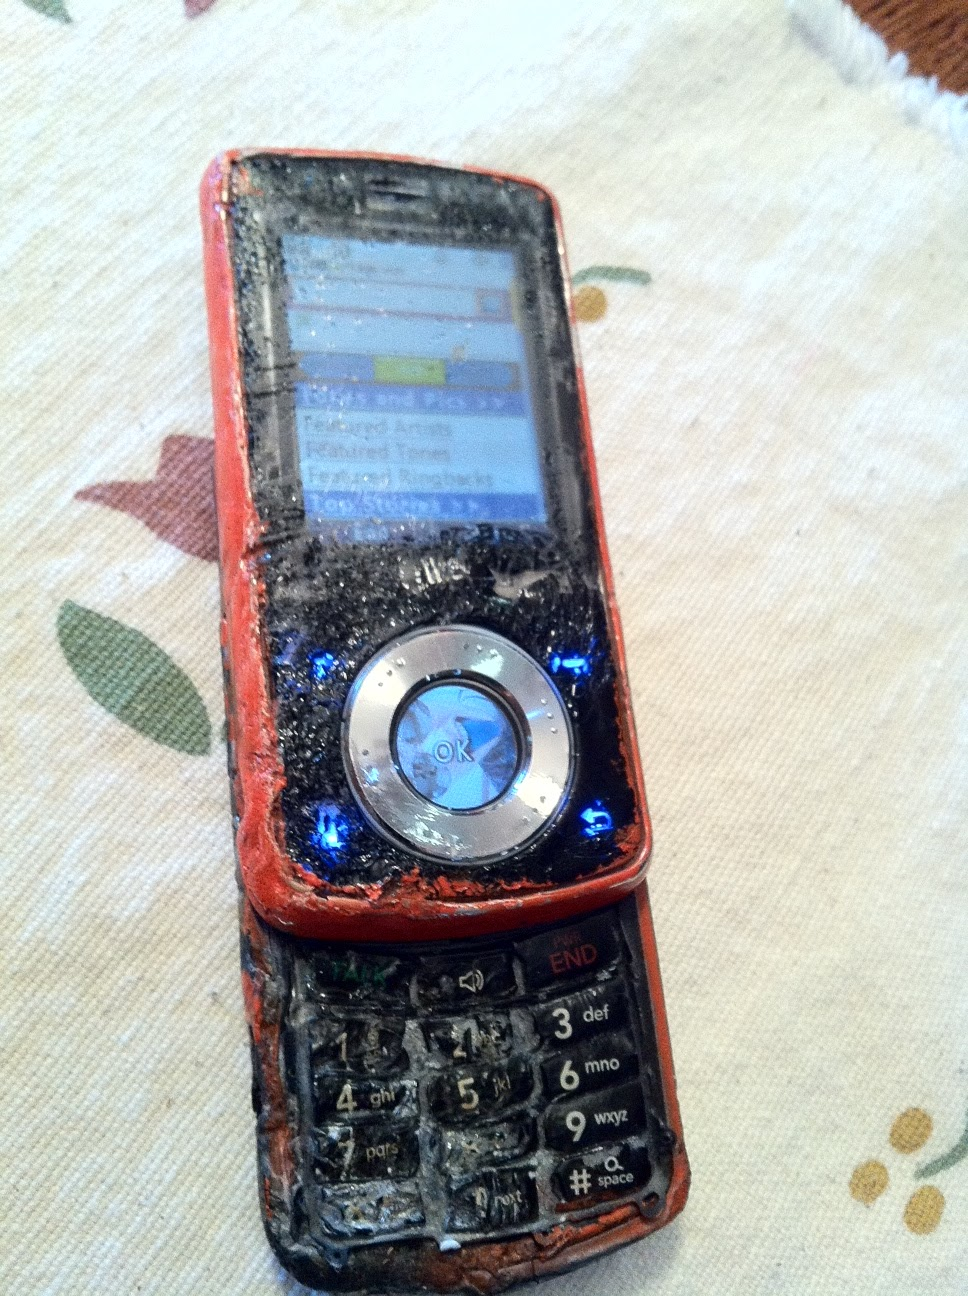 The-Most-Durable-Damaged-Cell-Phone-Ever-LG-Still-Working